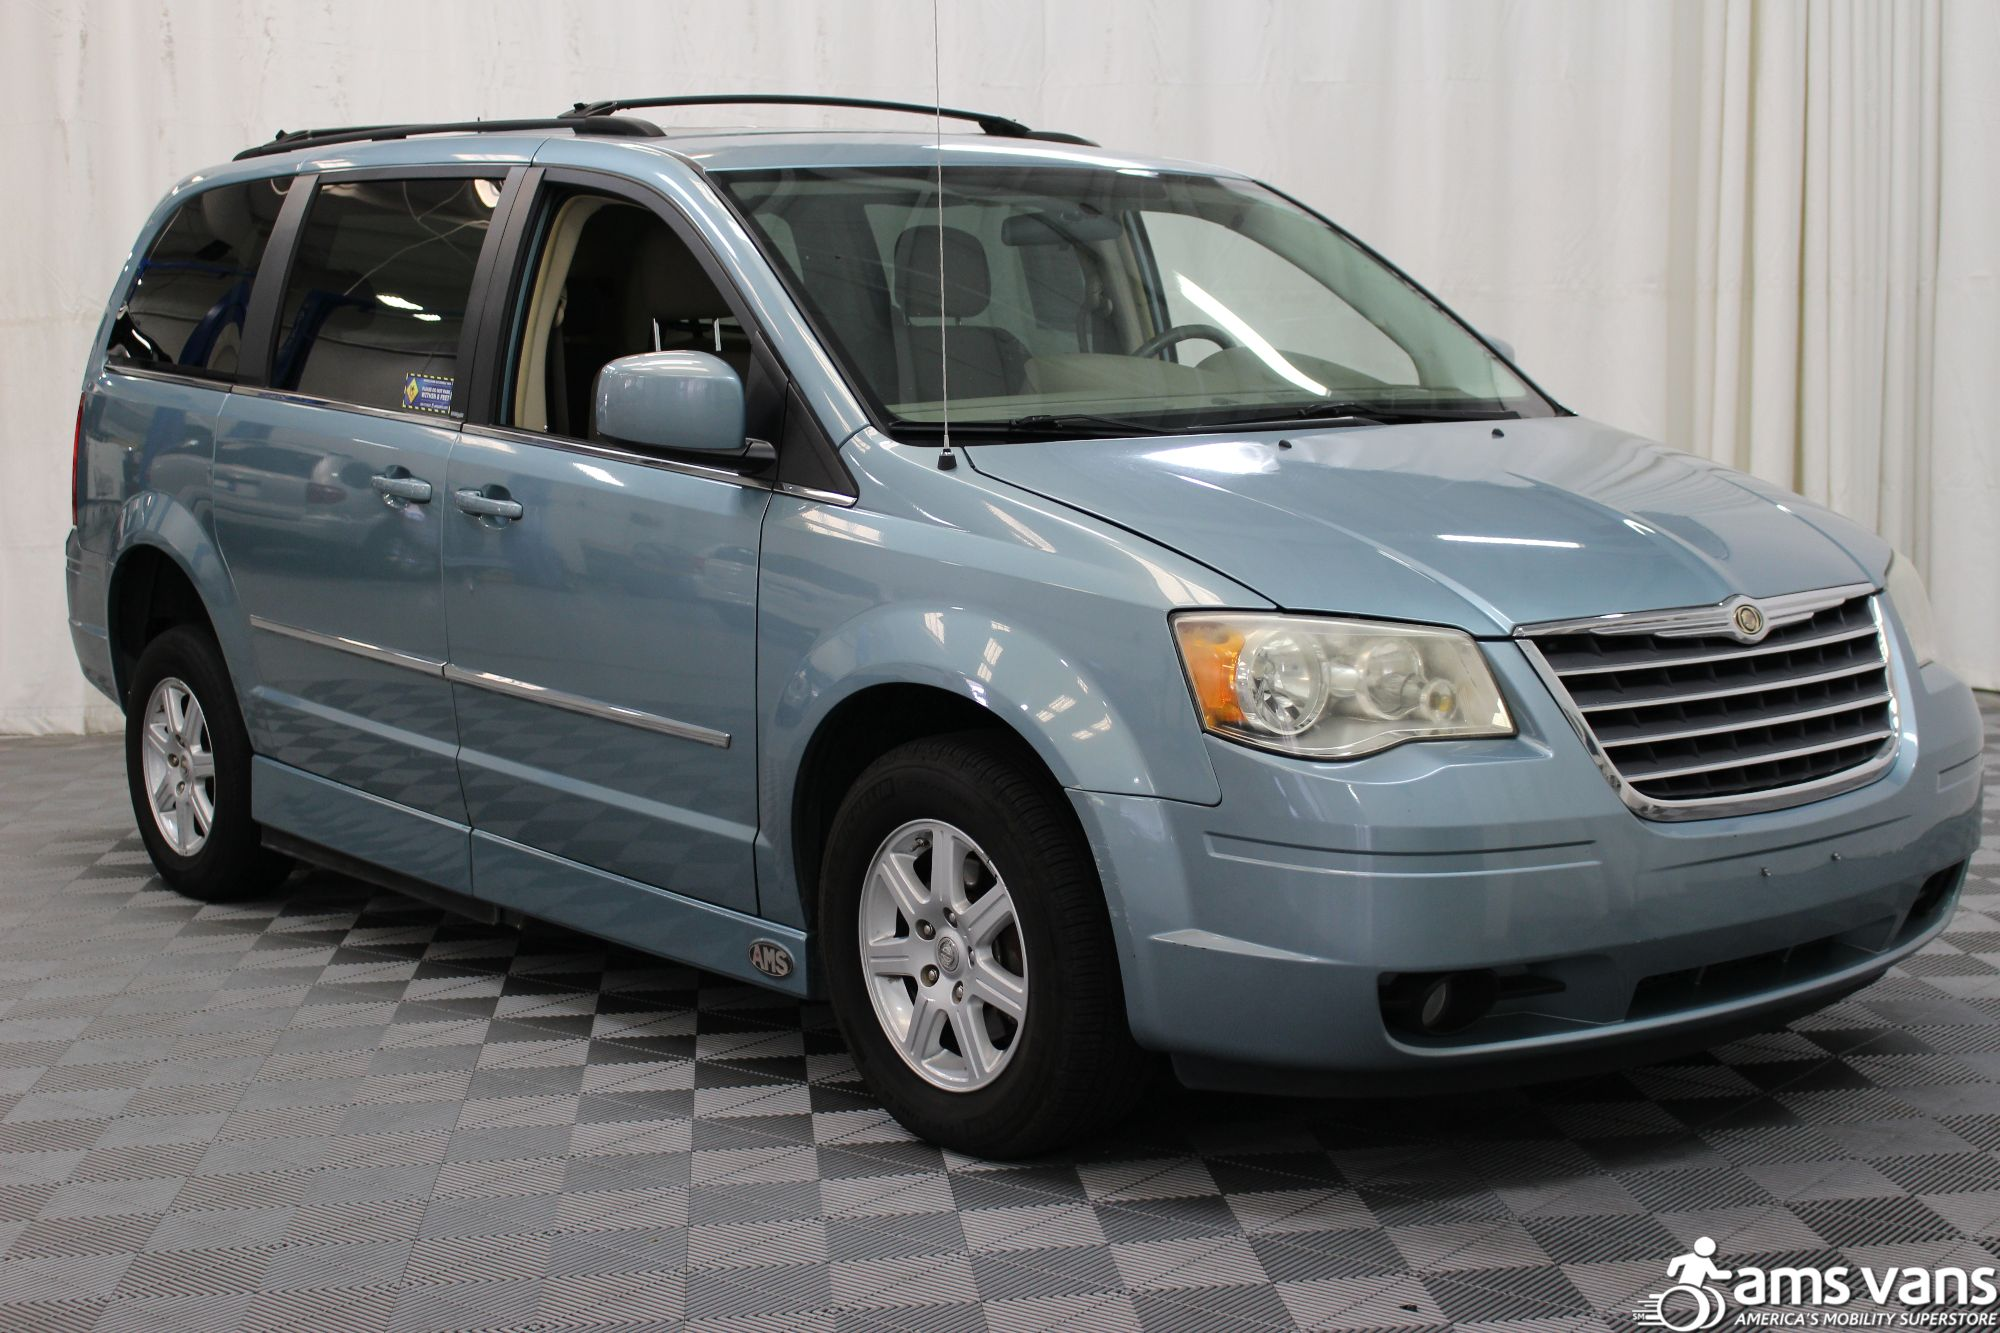 2010 Chrysler Town and Country Wheelchair Van For Sale #11